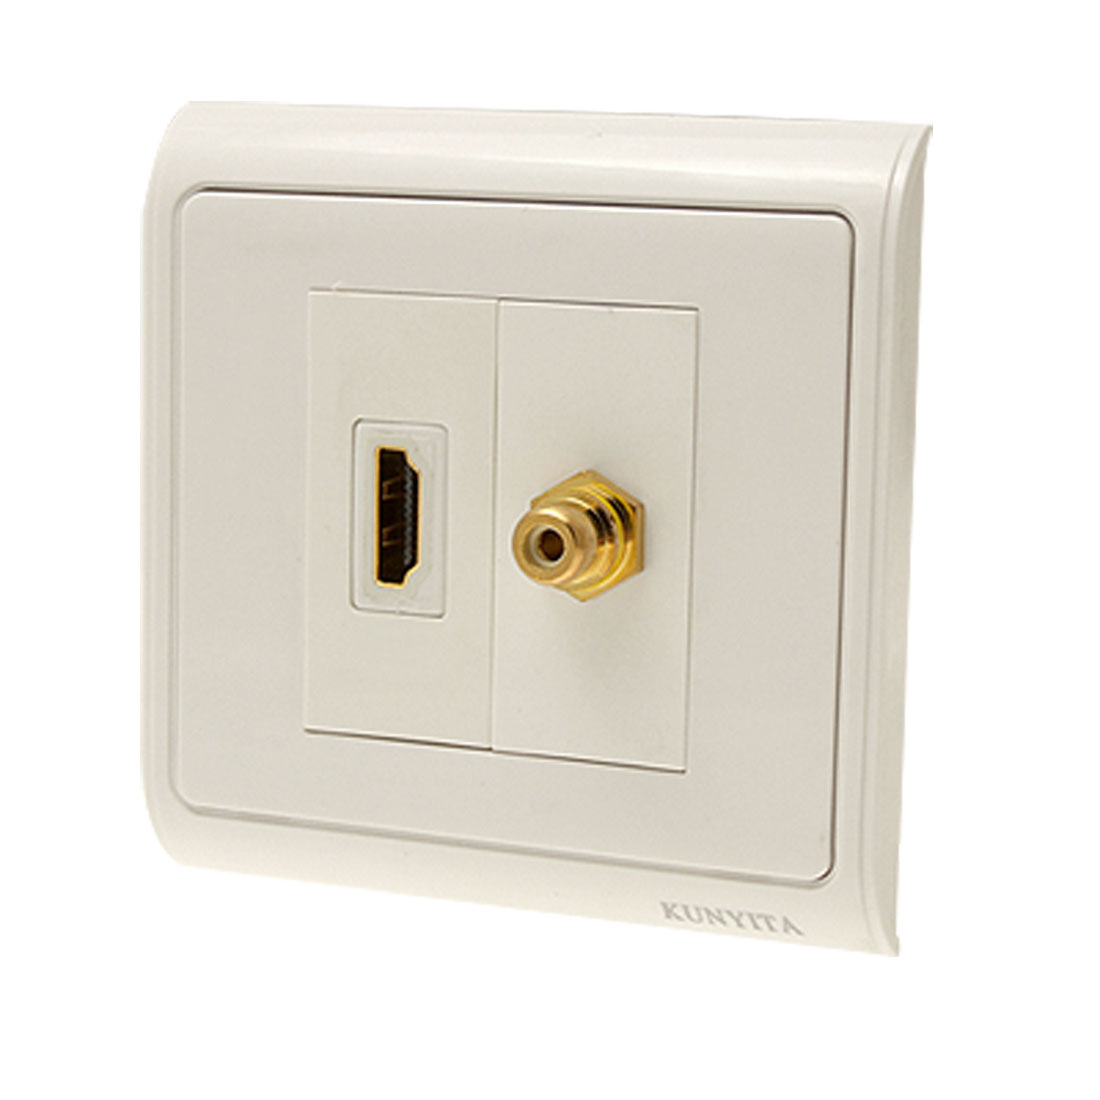 Female 19 Pin HDMI Wall Plate Jack with Single RCA Connector Wall Plate